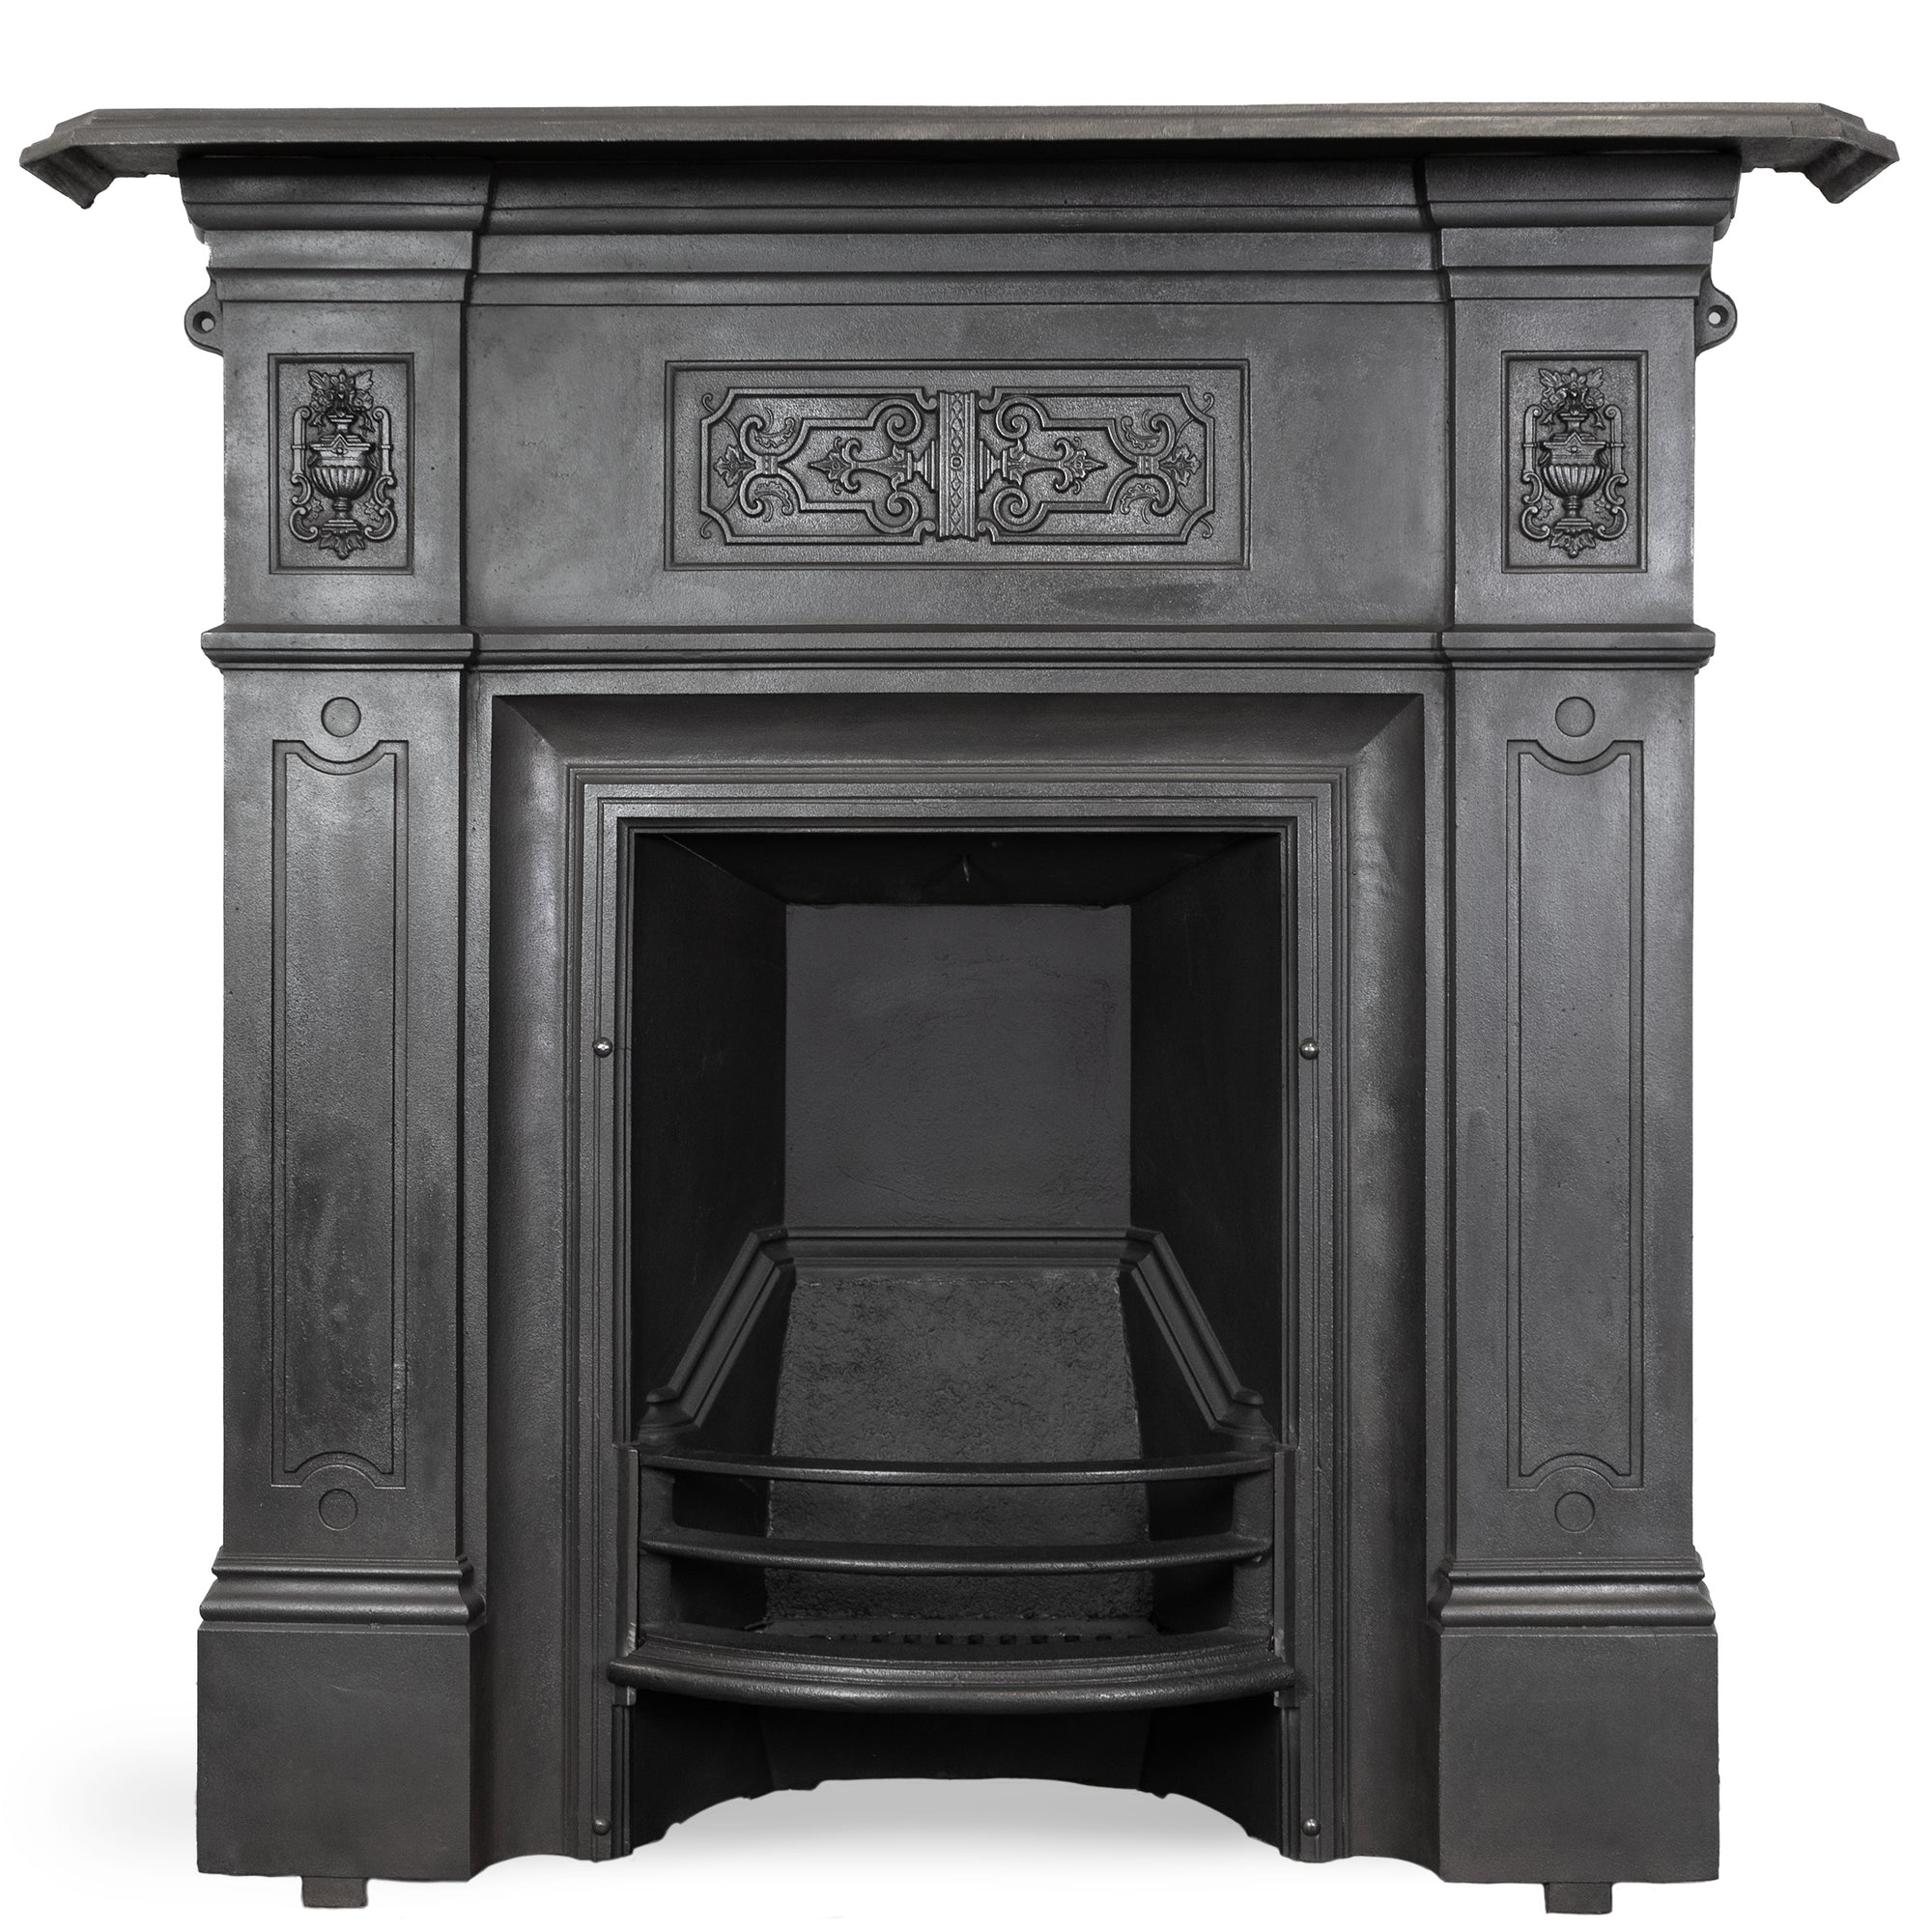 Antique Victorian Cast Iron Combination Fireplace | The Architectural Forum